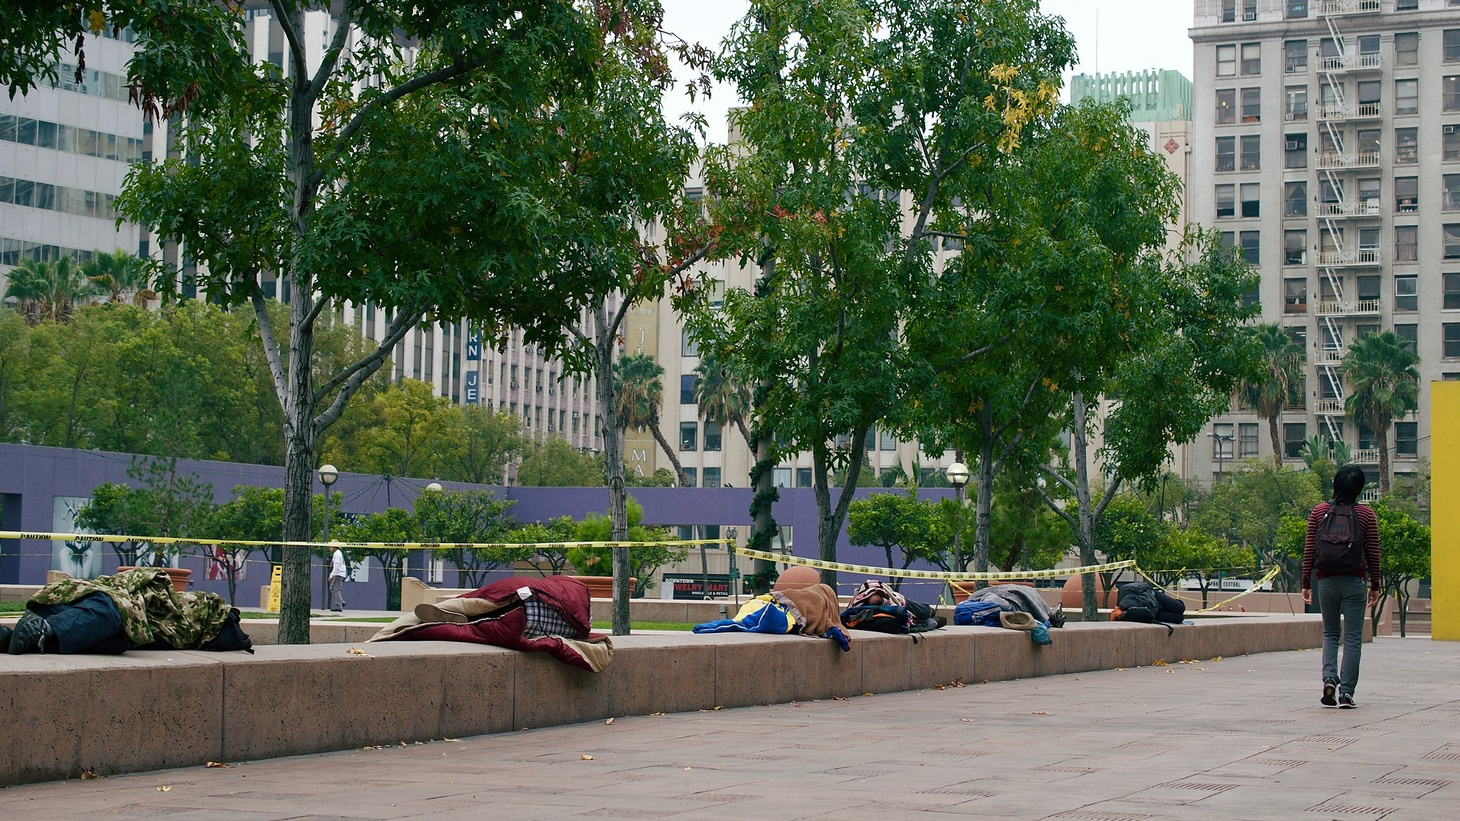 Homeless people sleeping in Pershing Square in Downtown Los Angeles